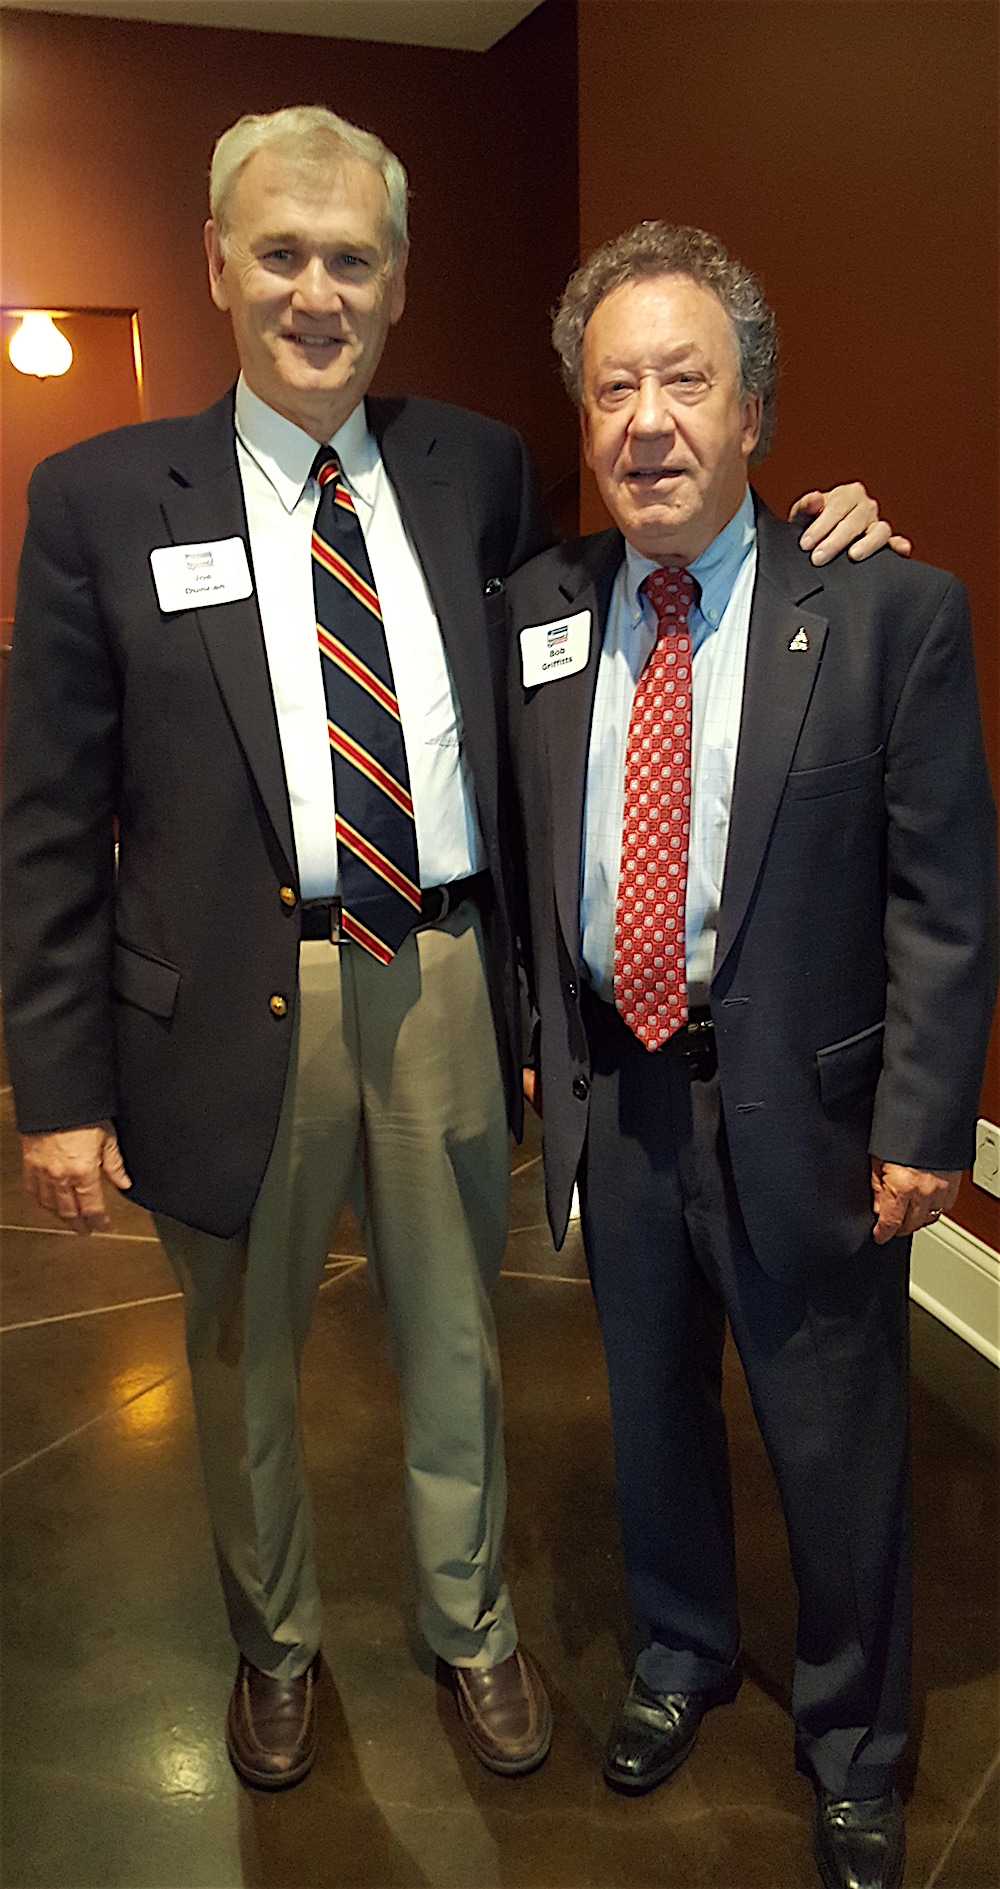 Joe Duncan, left, with Bob Griffitts, representing Massey's brother, Congressman Jimmy Duncan, who was out of the country.